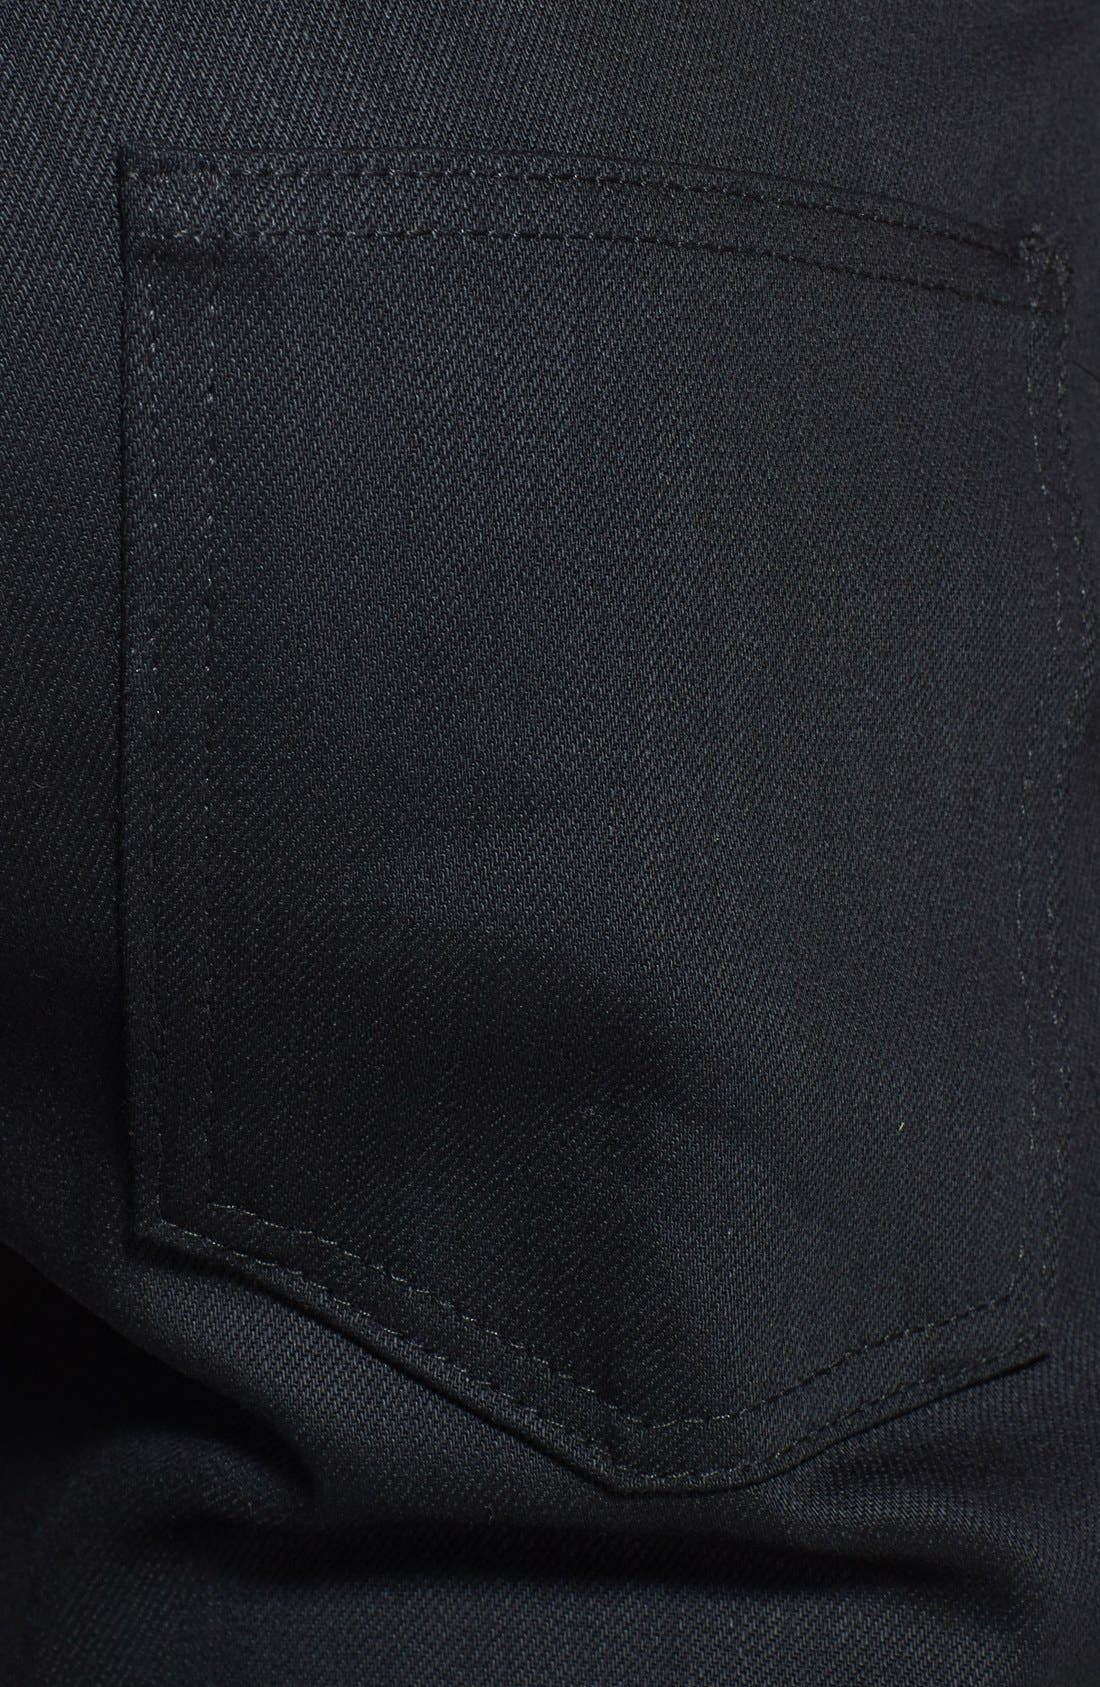 'Super Skinny Guy' Skinny Fit Raw Jeans,                             Alternate thumbnail 3, color,                             BLACK POWER STRETCH